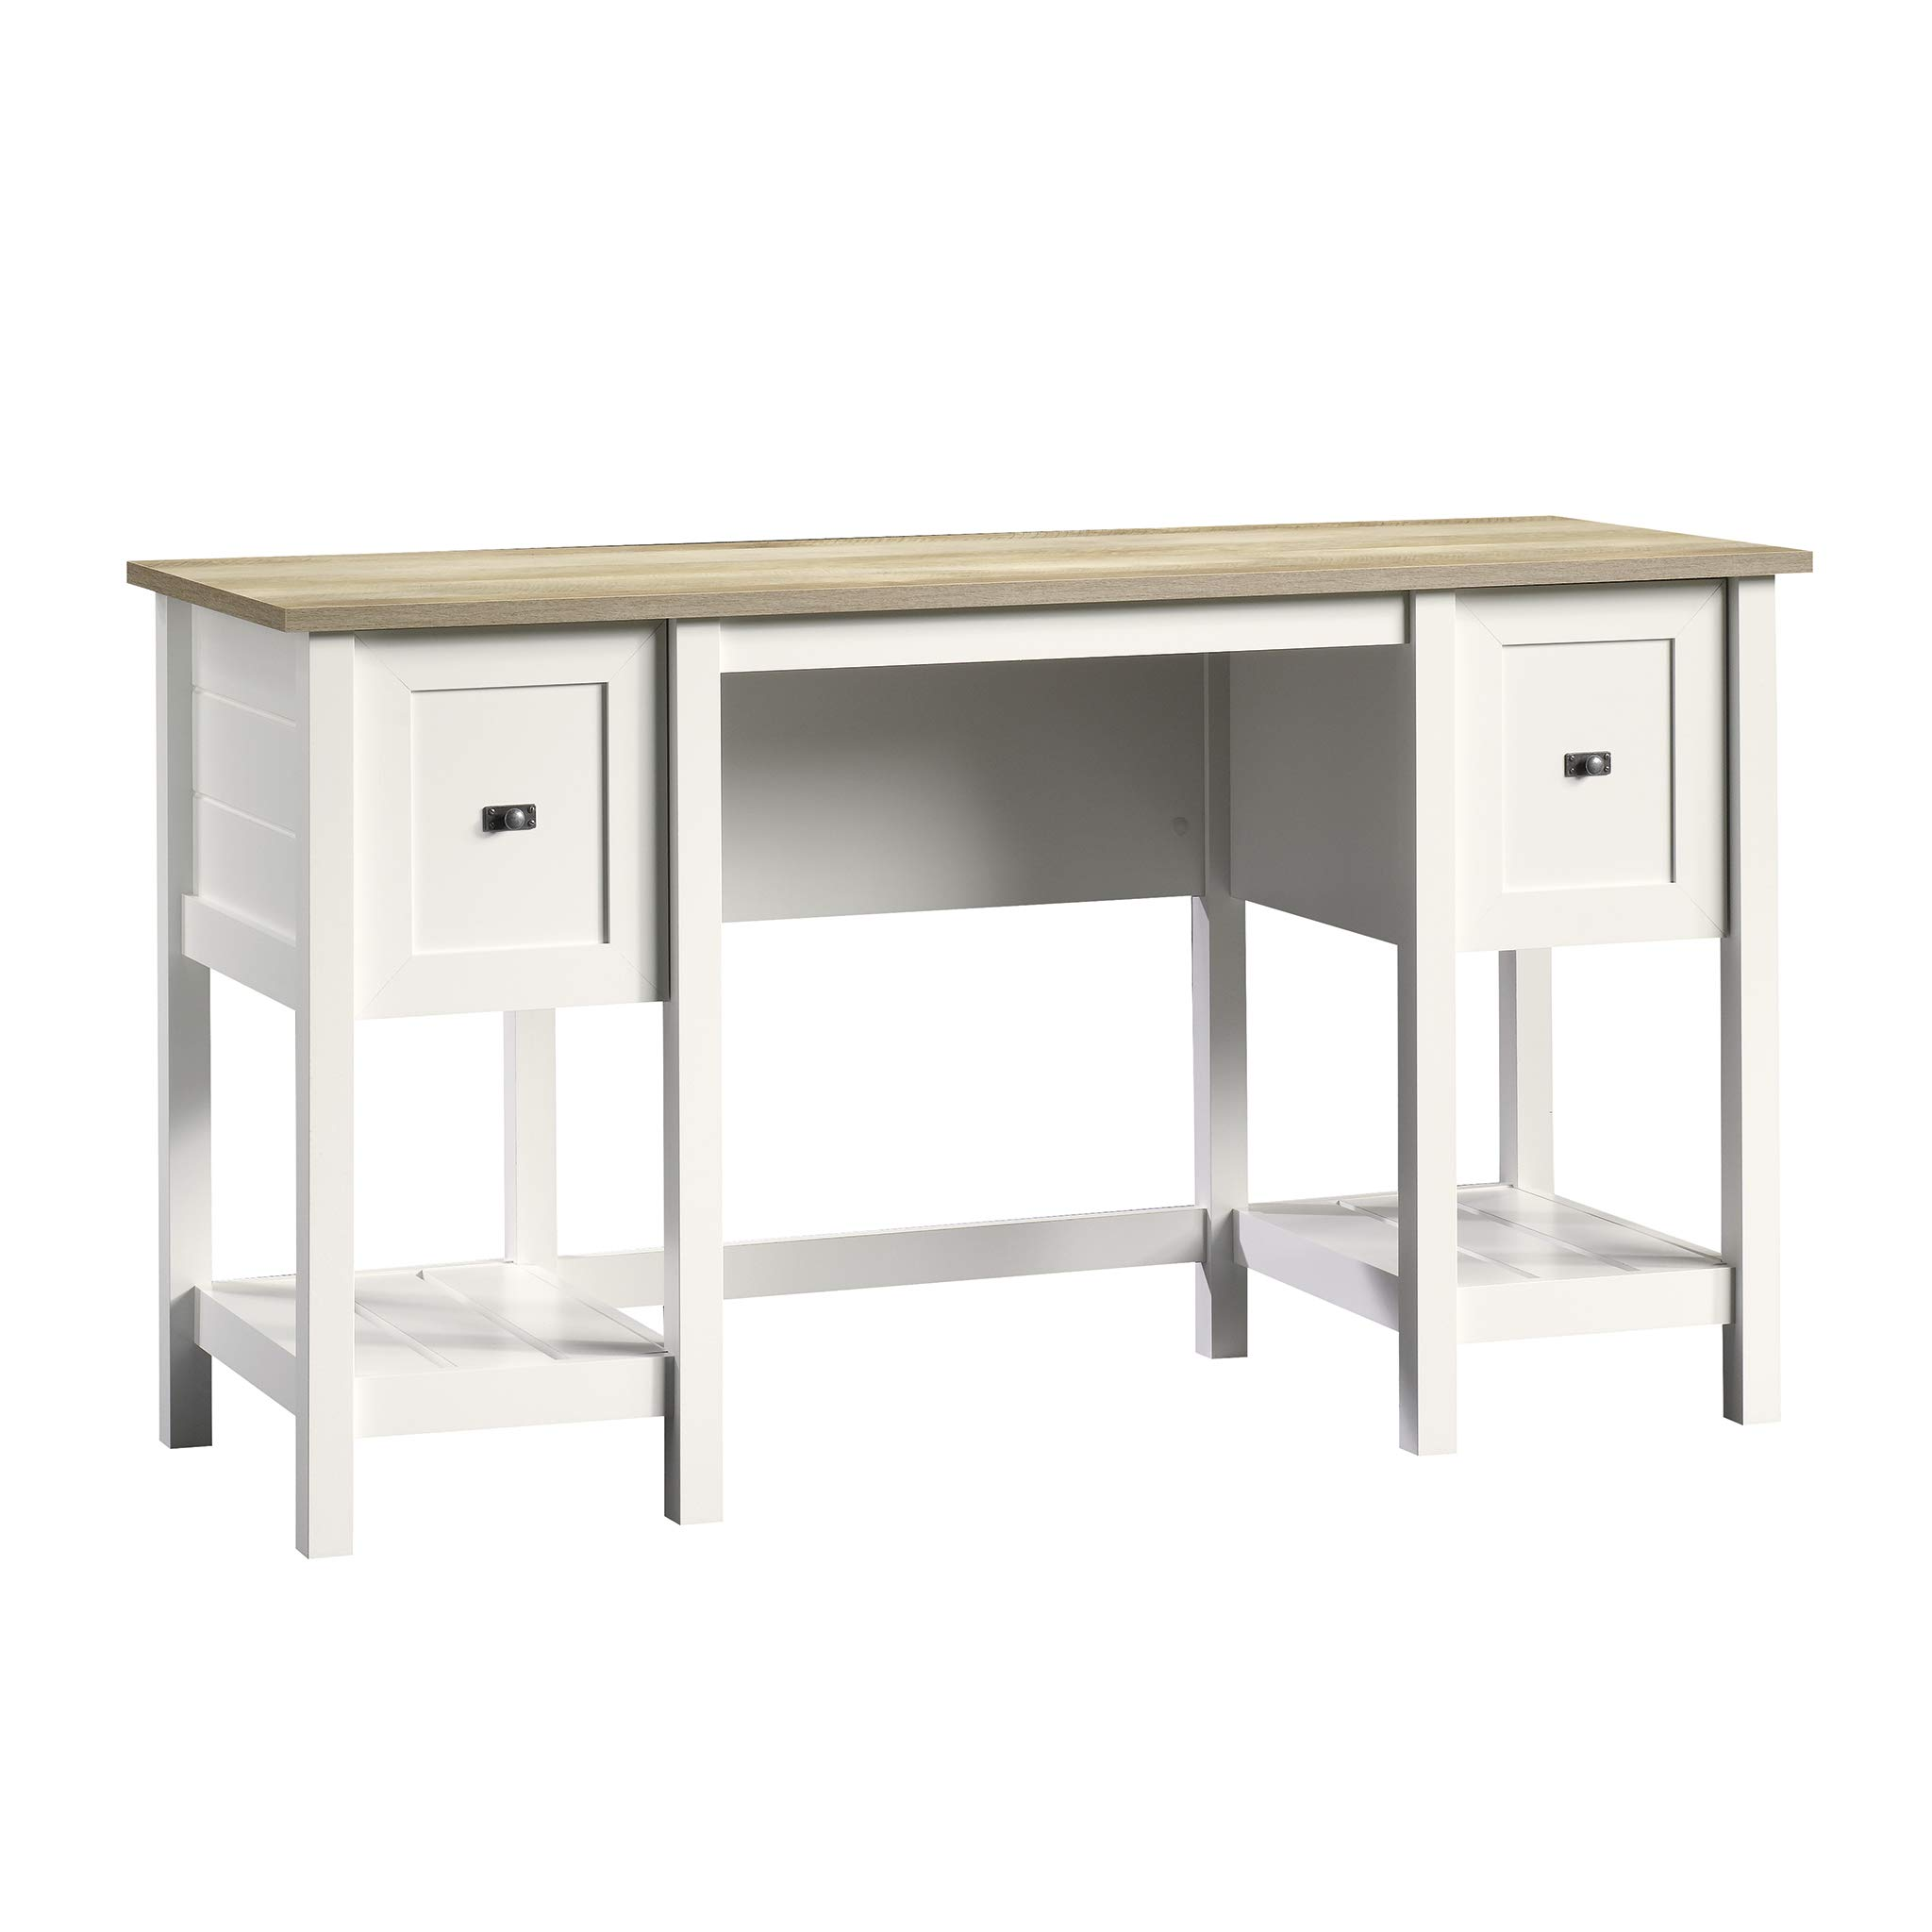 Sauder 418072 Cottage Road Desk, L: 53.94'' x W: 19.45'' x H: 29.76'', Soft White finish by Sauder